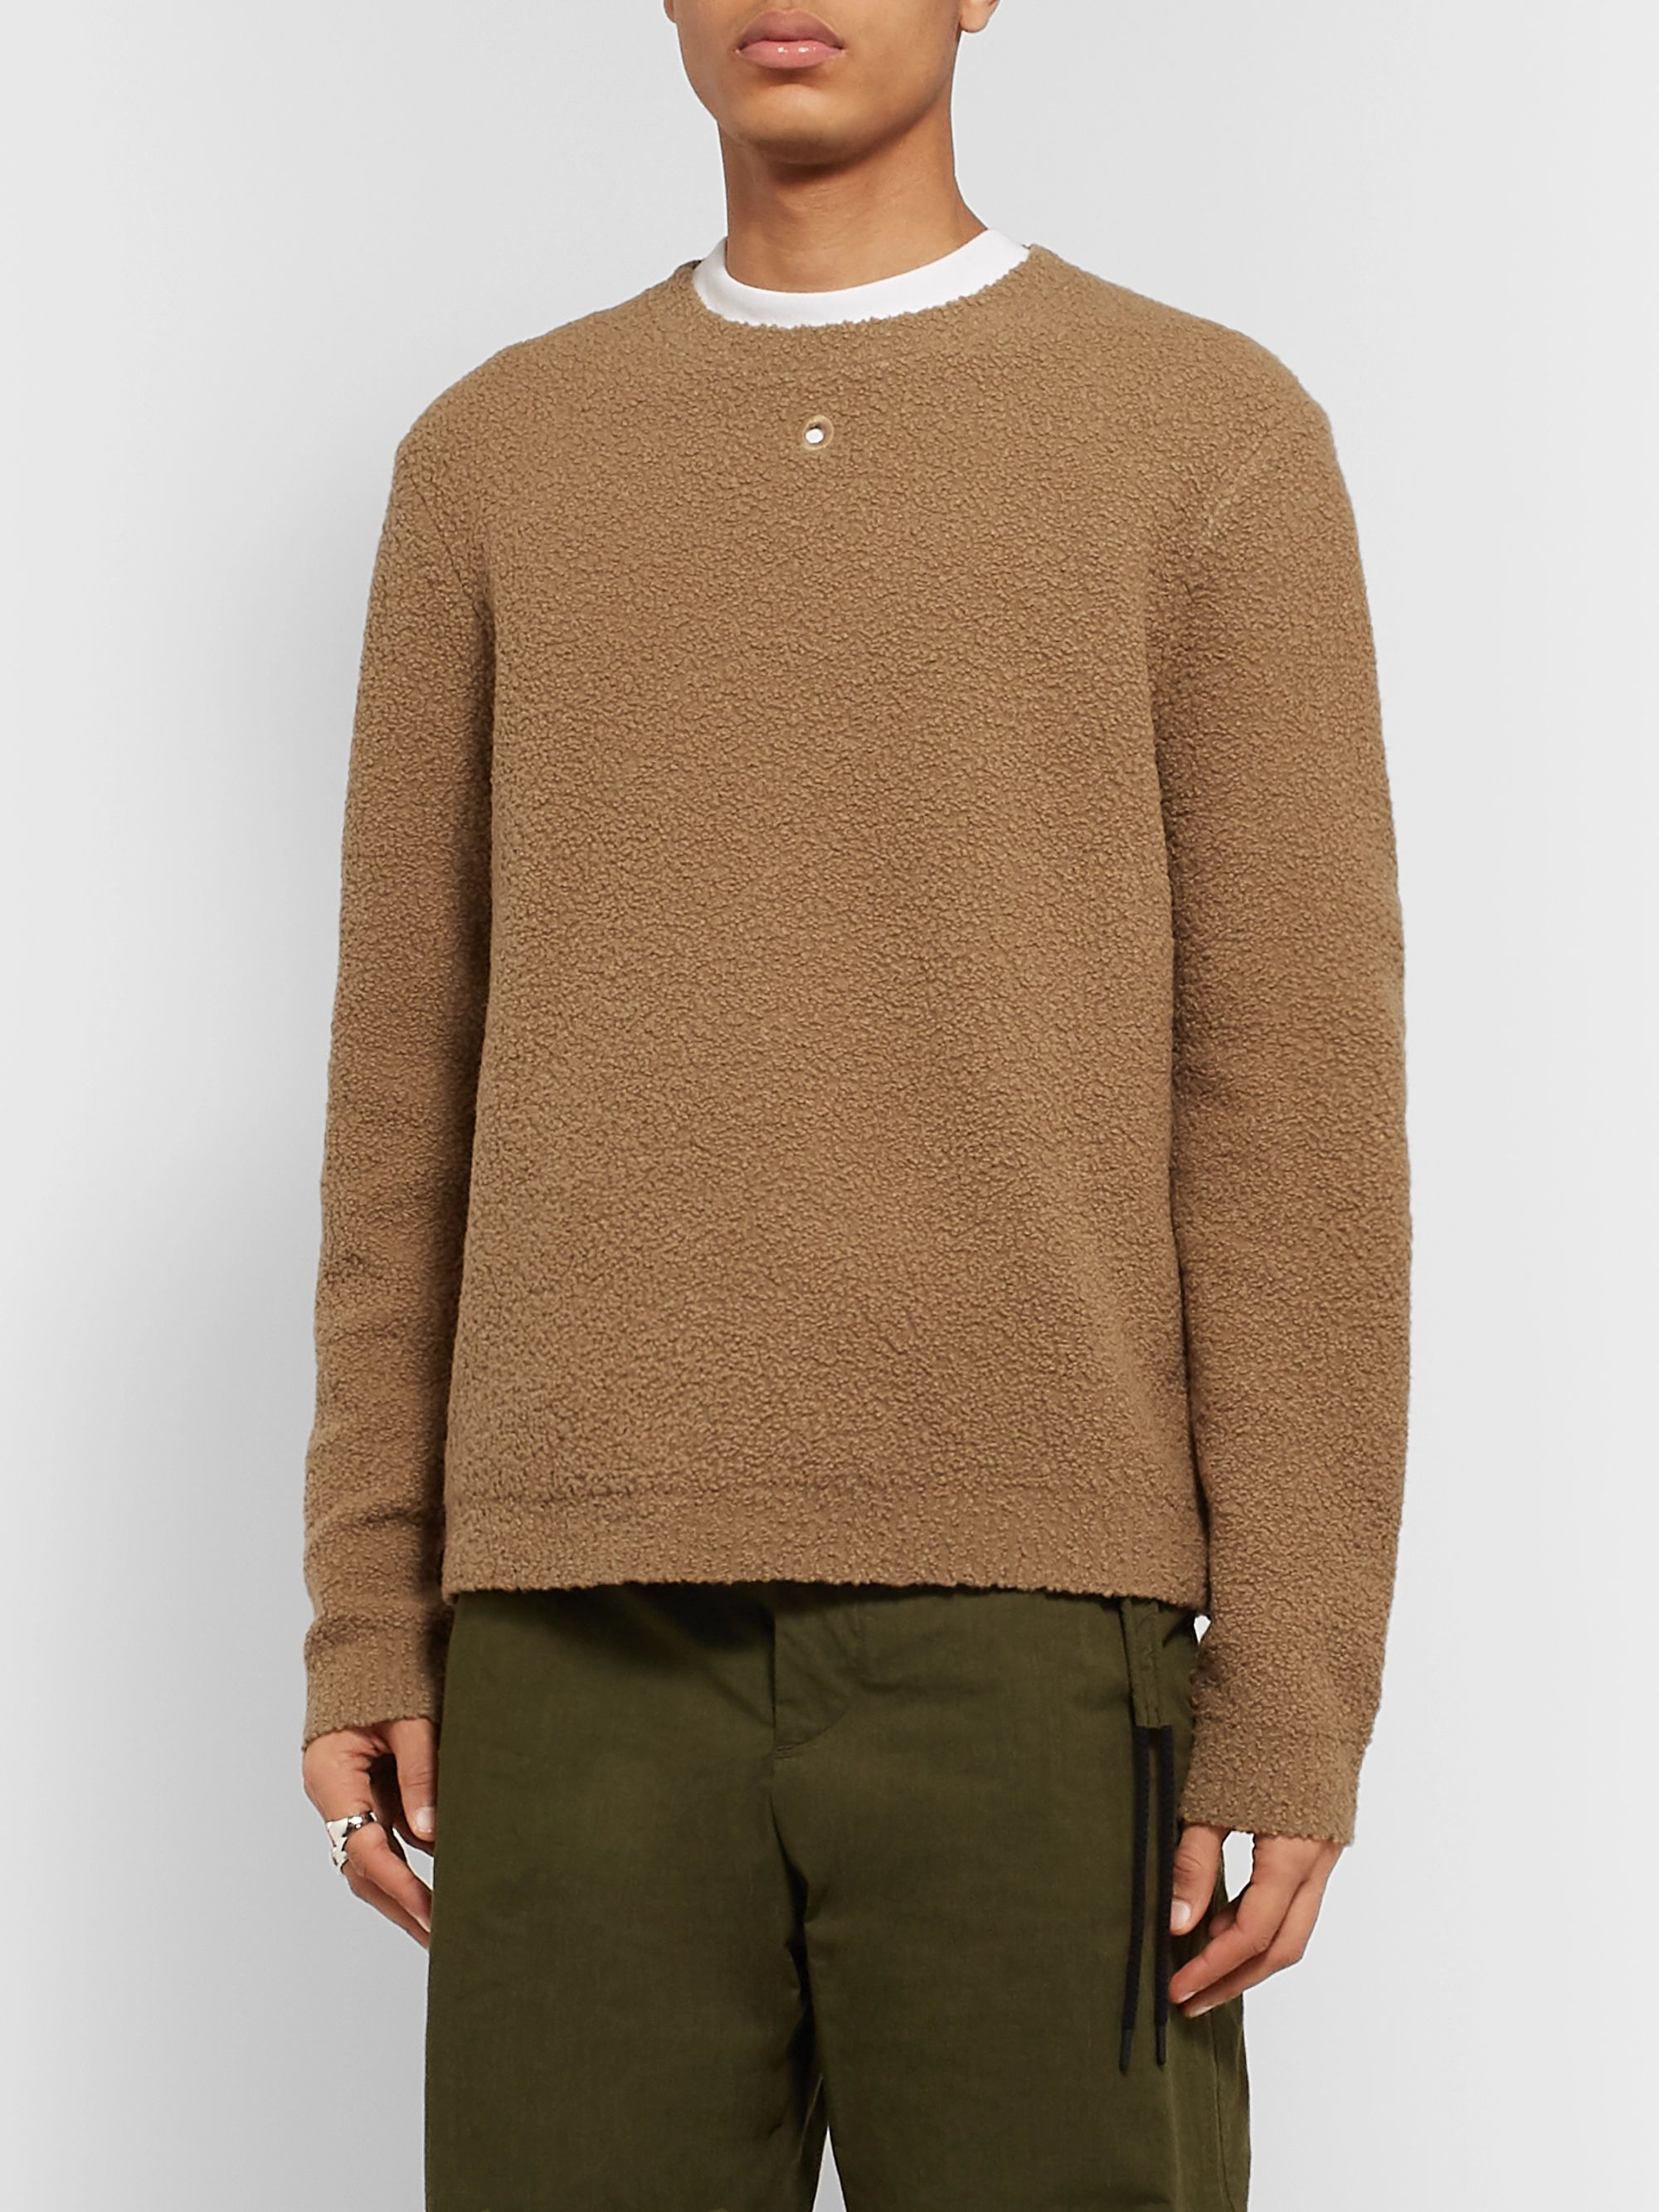 Craig Green Embroidered Wool-Blend Bouclé Sweater